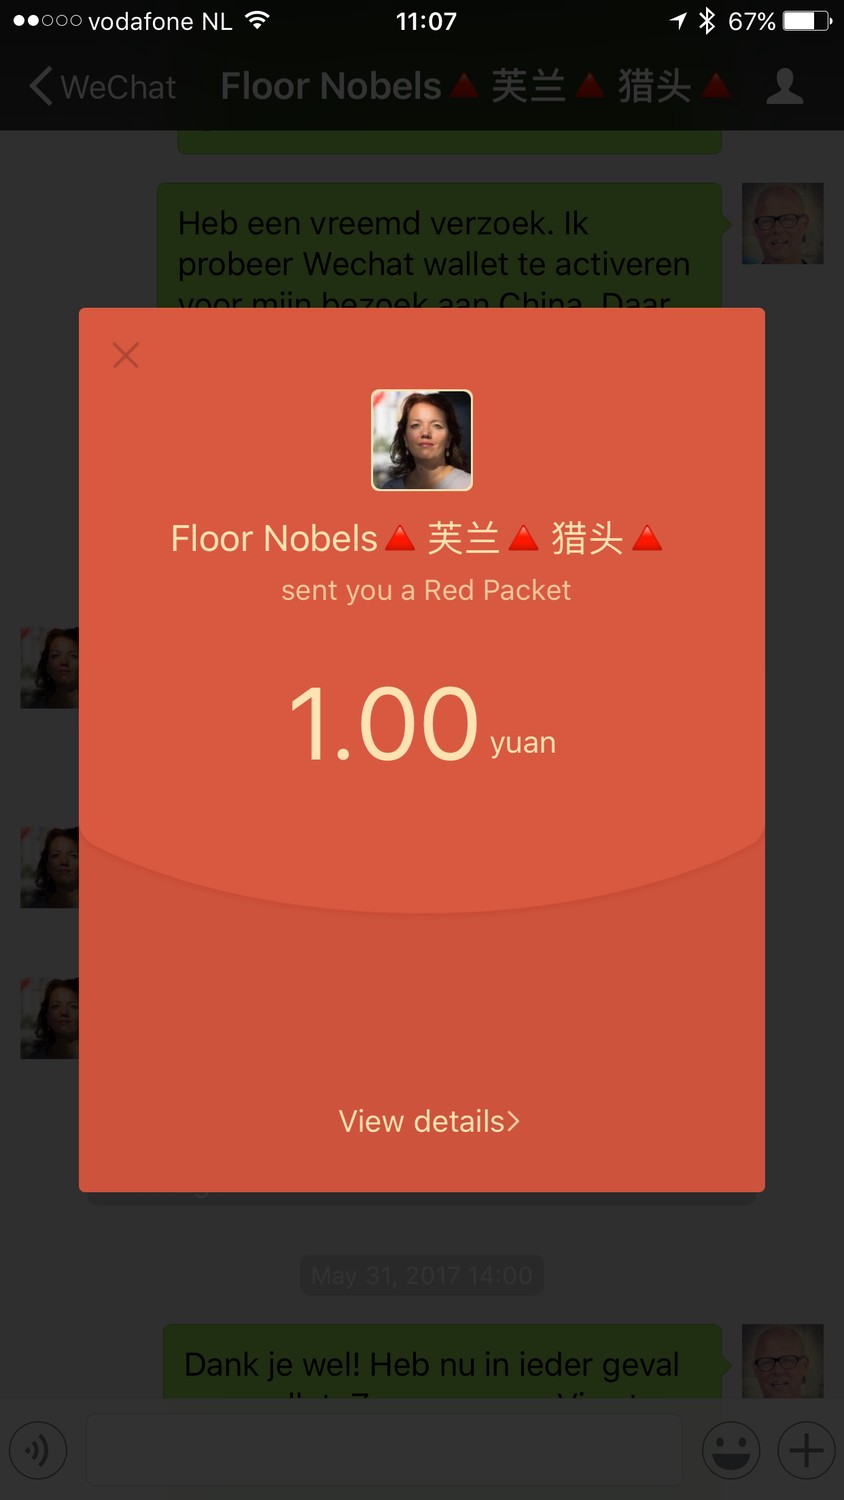 How To Setup A Wechat Wallet Without Chinese Bank Account Wiring Money From Us China Allows You Add Cards And Credit The App It Is Supporting Visa But Not In All Cases Card